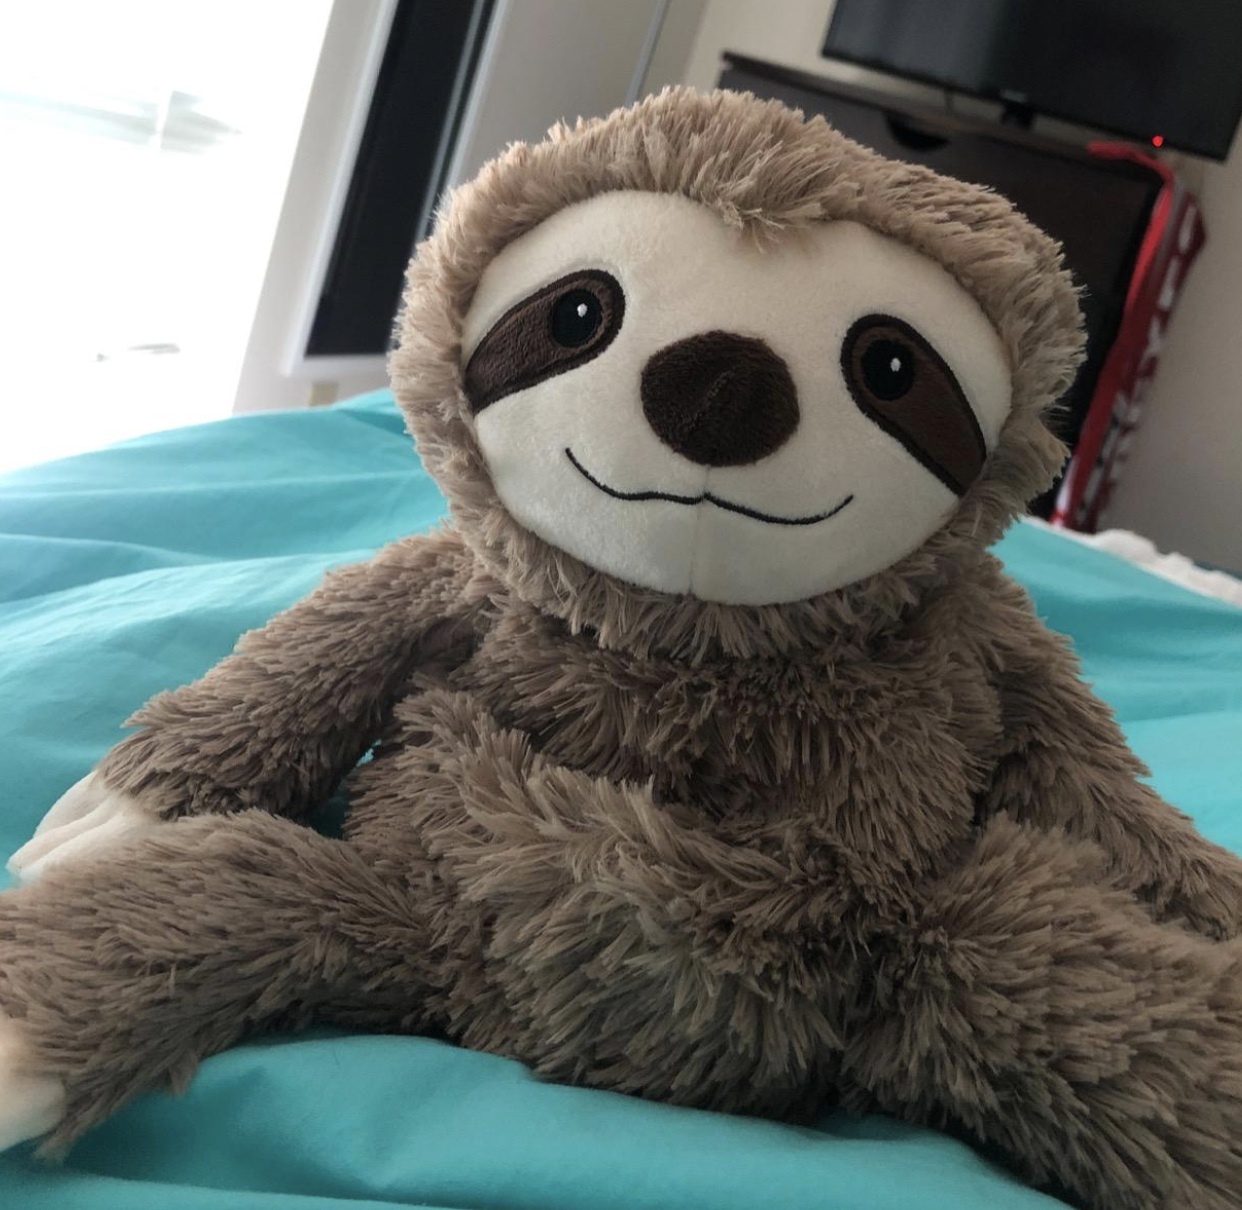 reviewer photo of the sloth plush